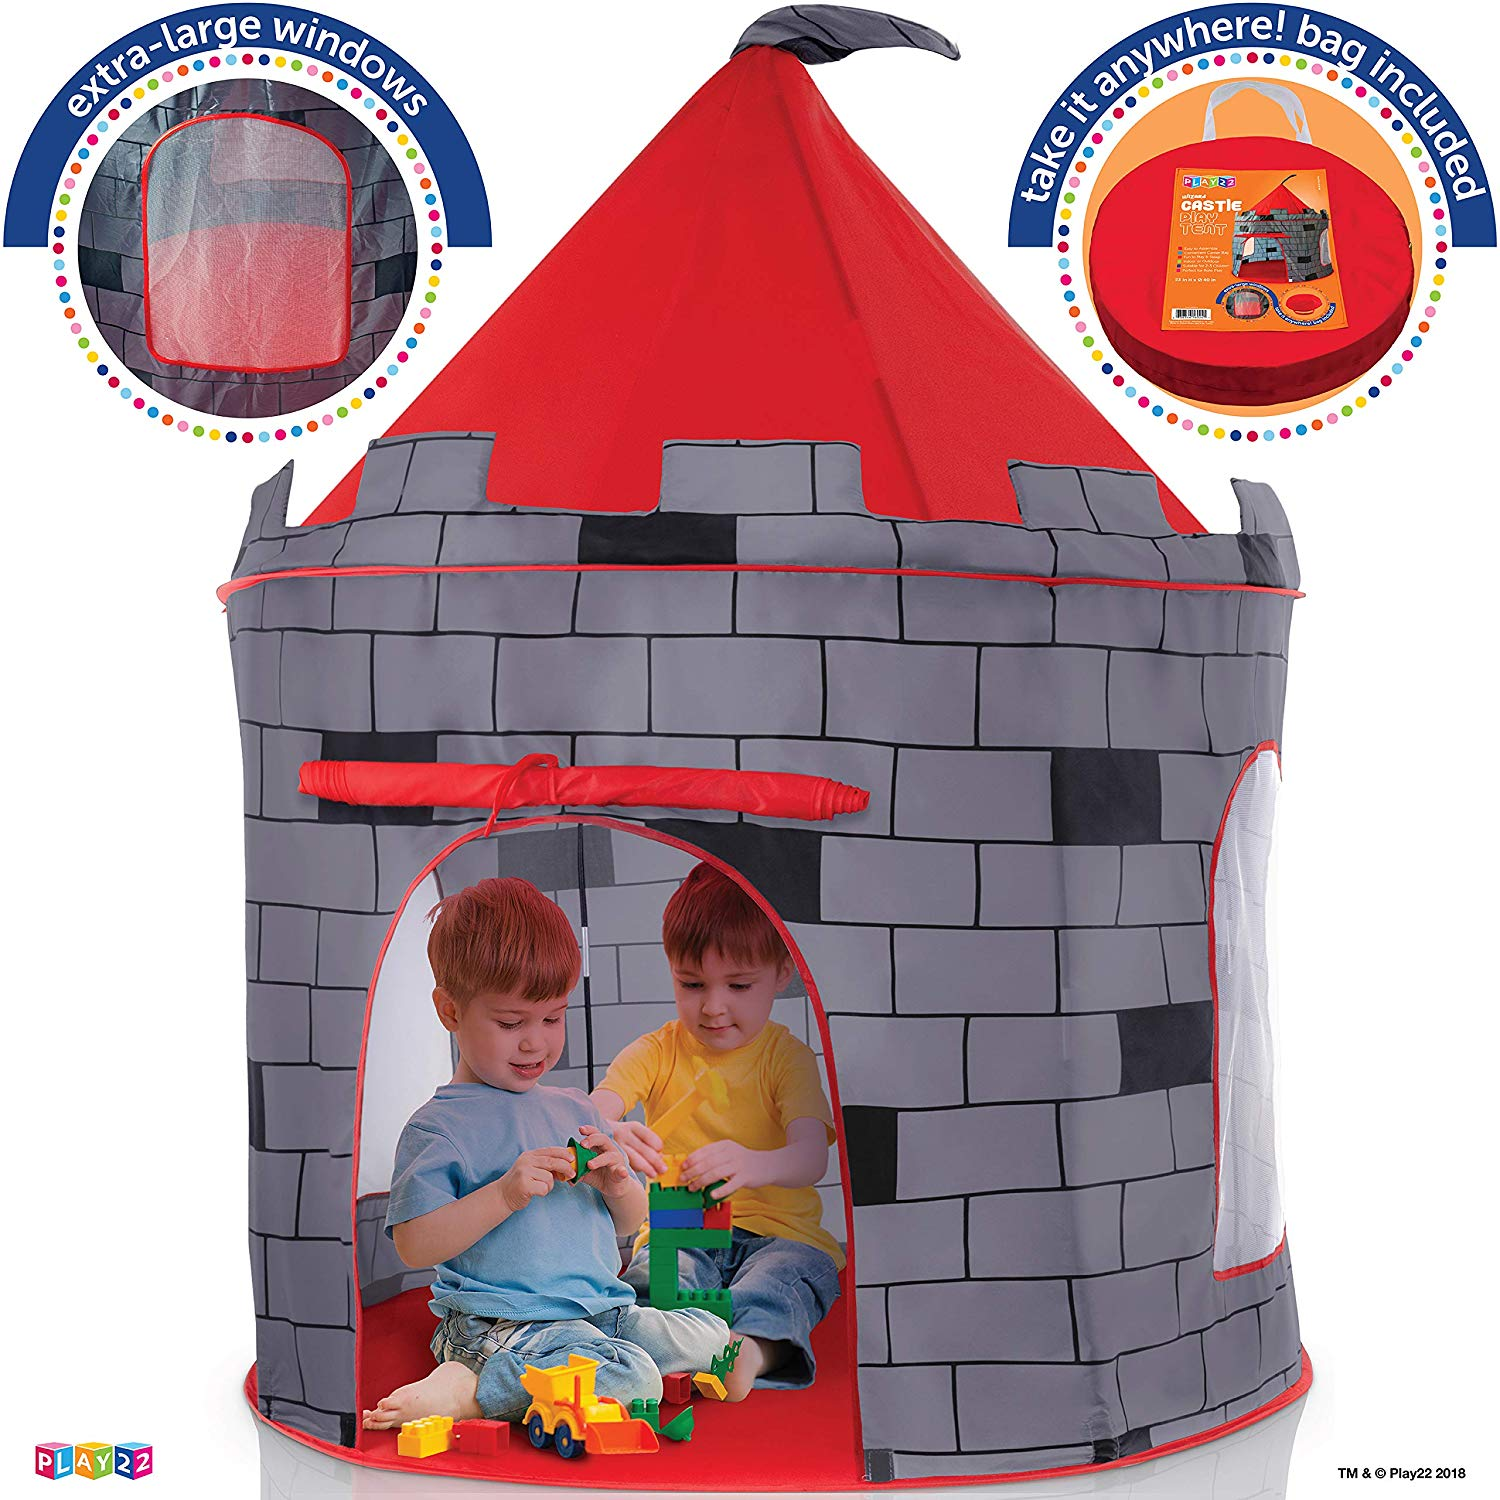 Kids Play Tent Knight Castle - Portable Kids Tent - Kids Pop Up Tent Foldable Into Carrying Bag - Childrens Play Tent Indoor Outdoor Use - Kids Playhouse Best Gift Boys Girls, Original